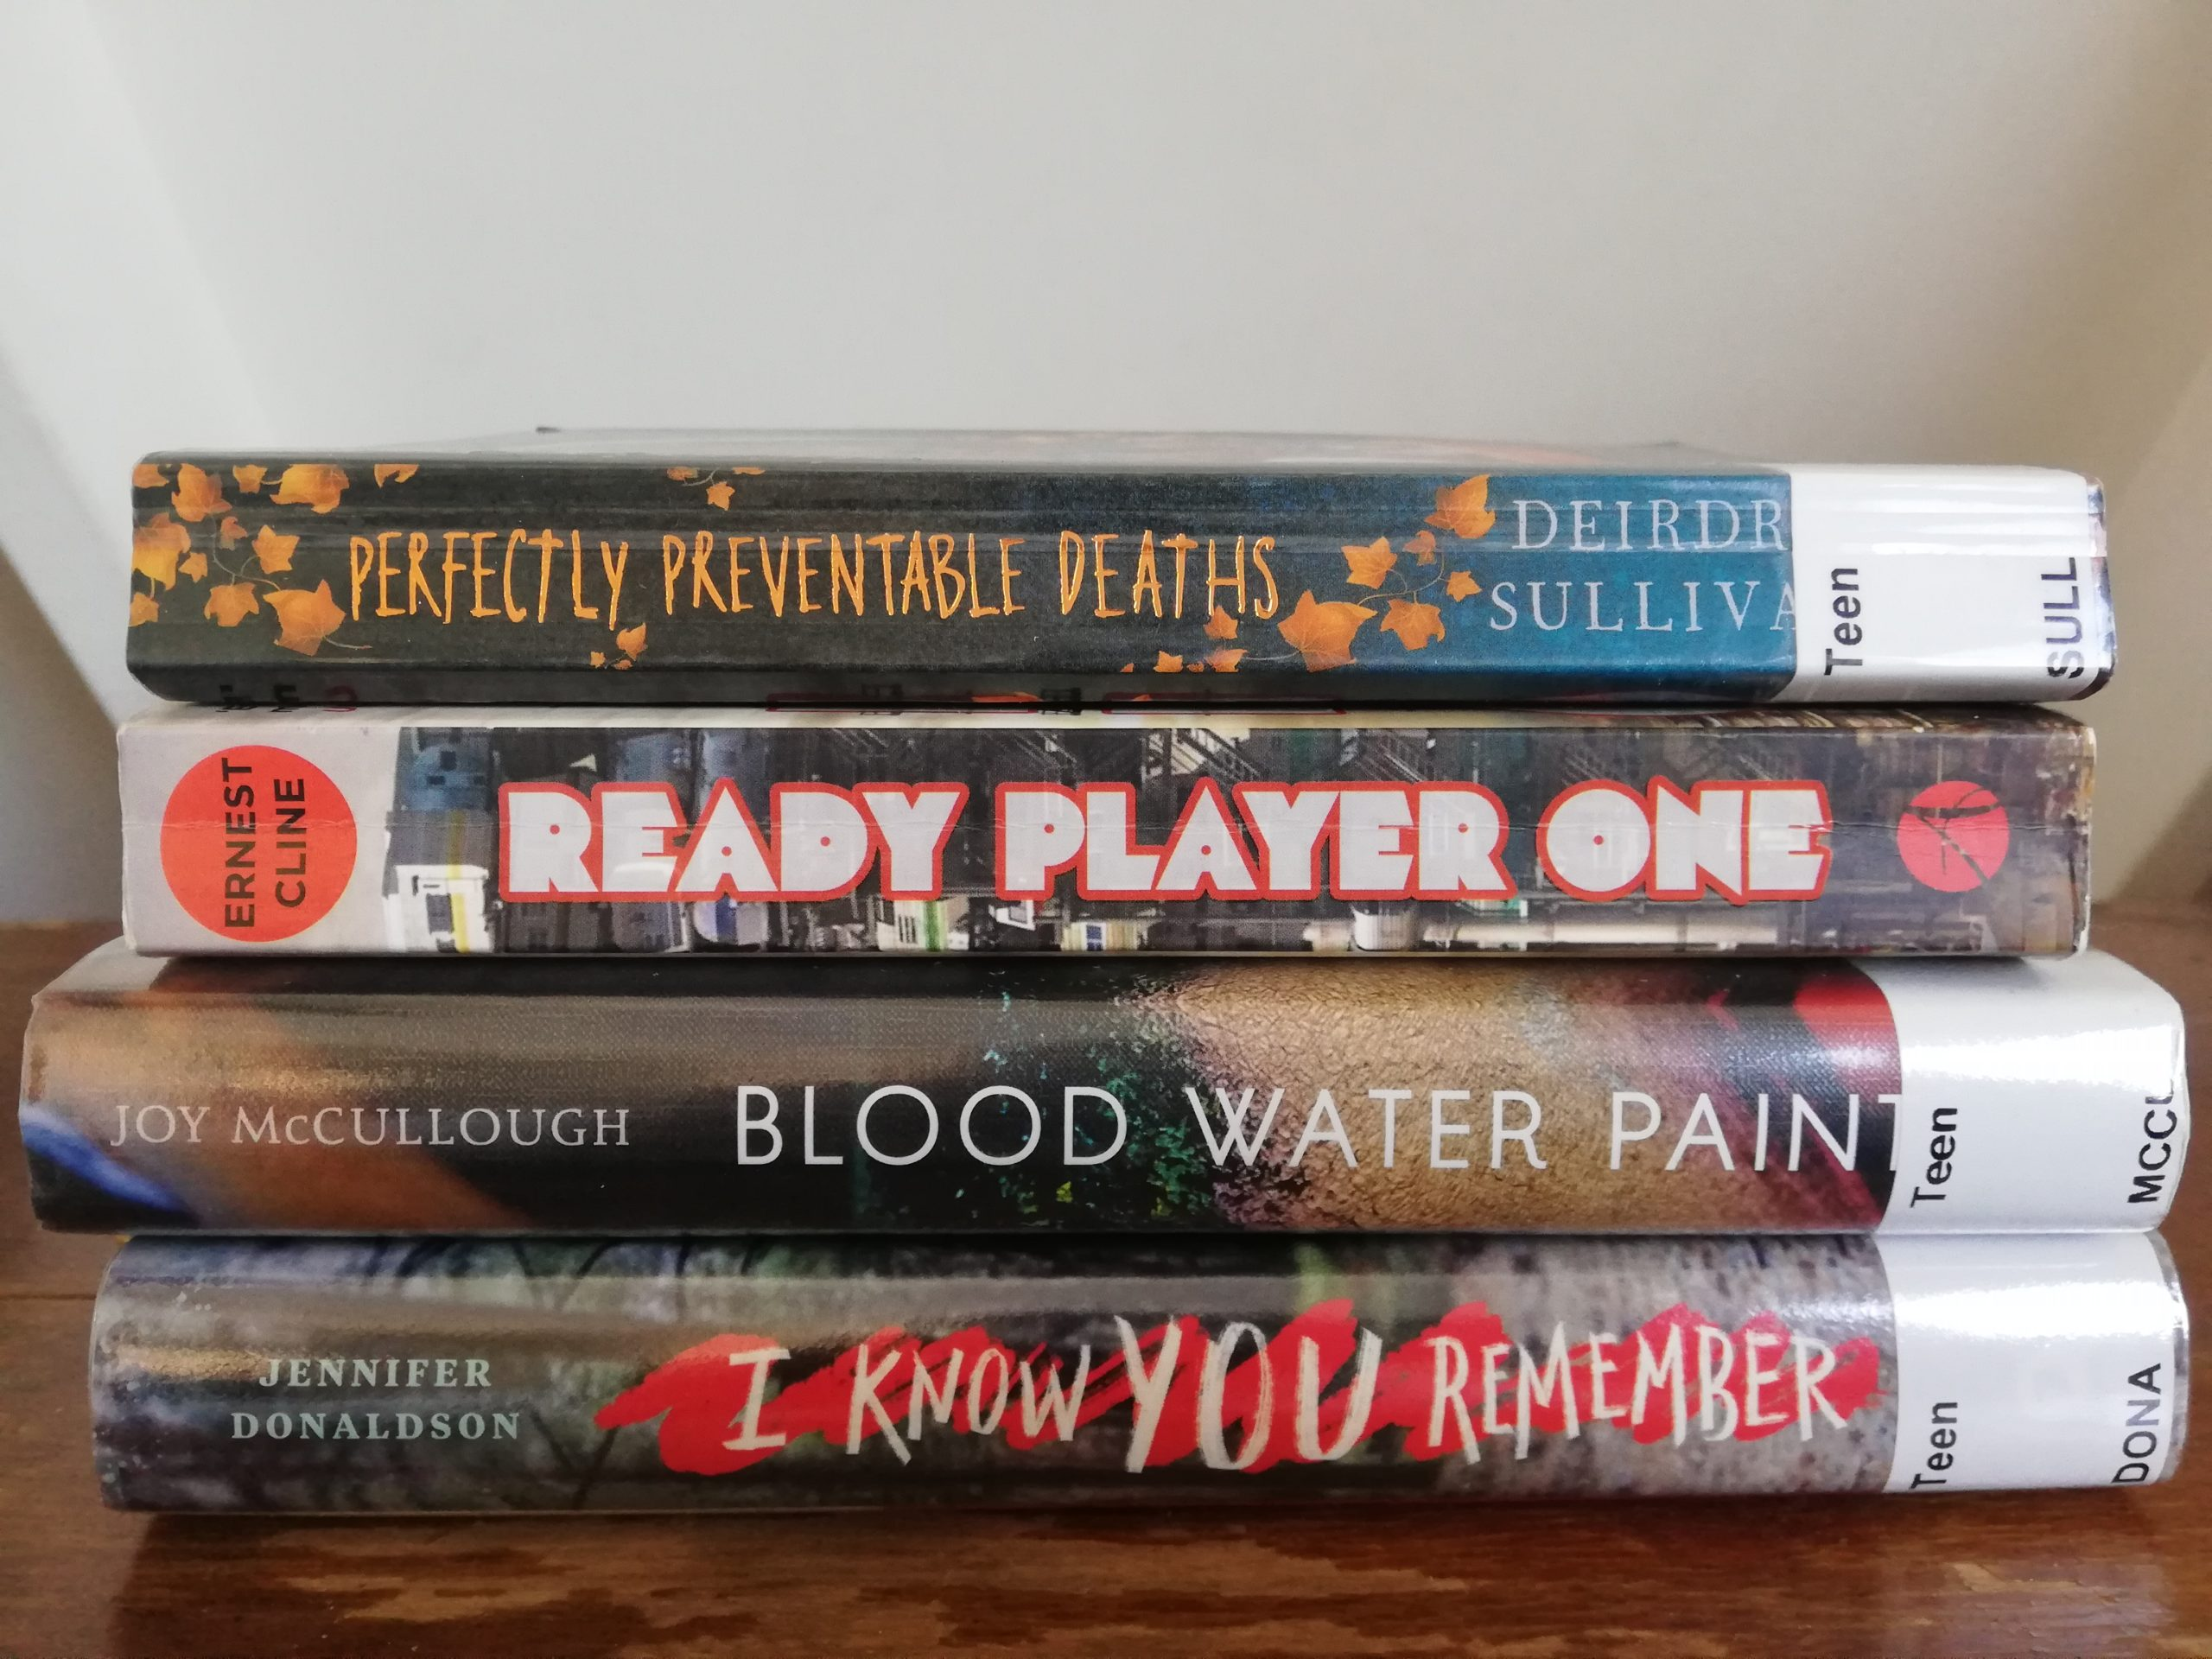 Ashley has plenty of books to read thanks to making a hasty trip to the library before it closed. Titles in the picture include Perfectly Preventable Deaths; Ready Player One; Blood Water Paint; I Know You Remember.